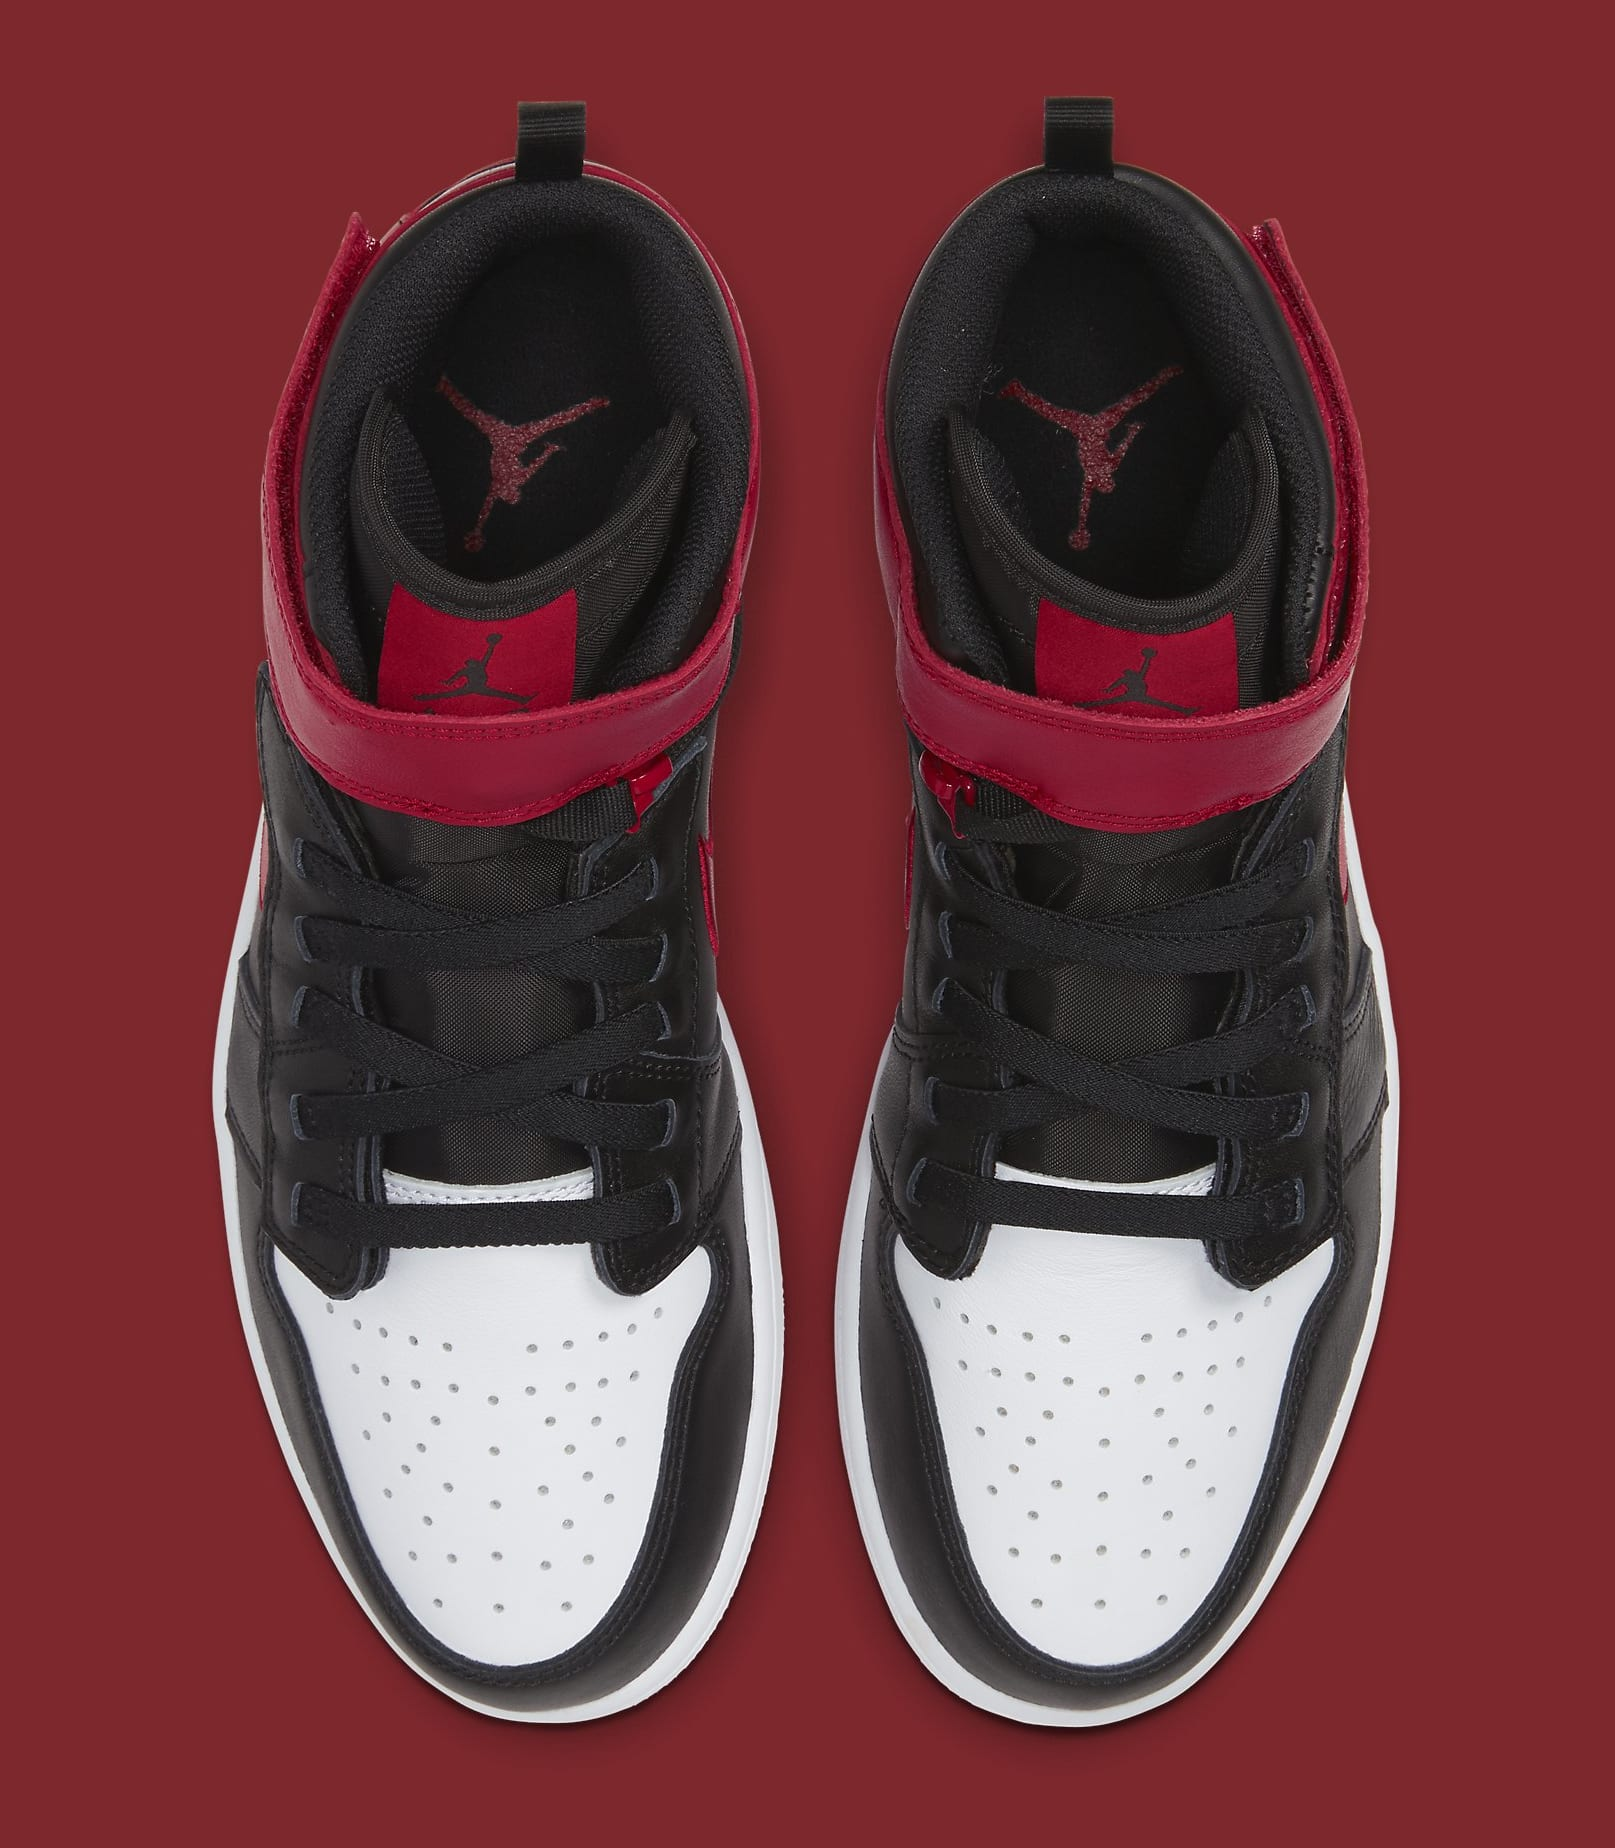 air-jordan-1-high-flyease-black-red-white-cq3835-001-top